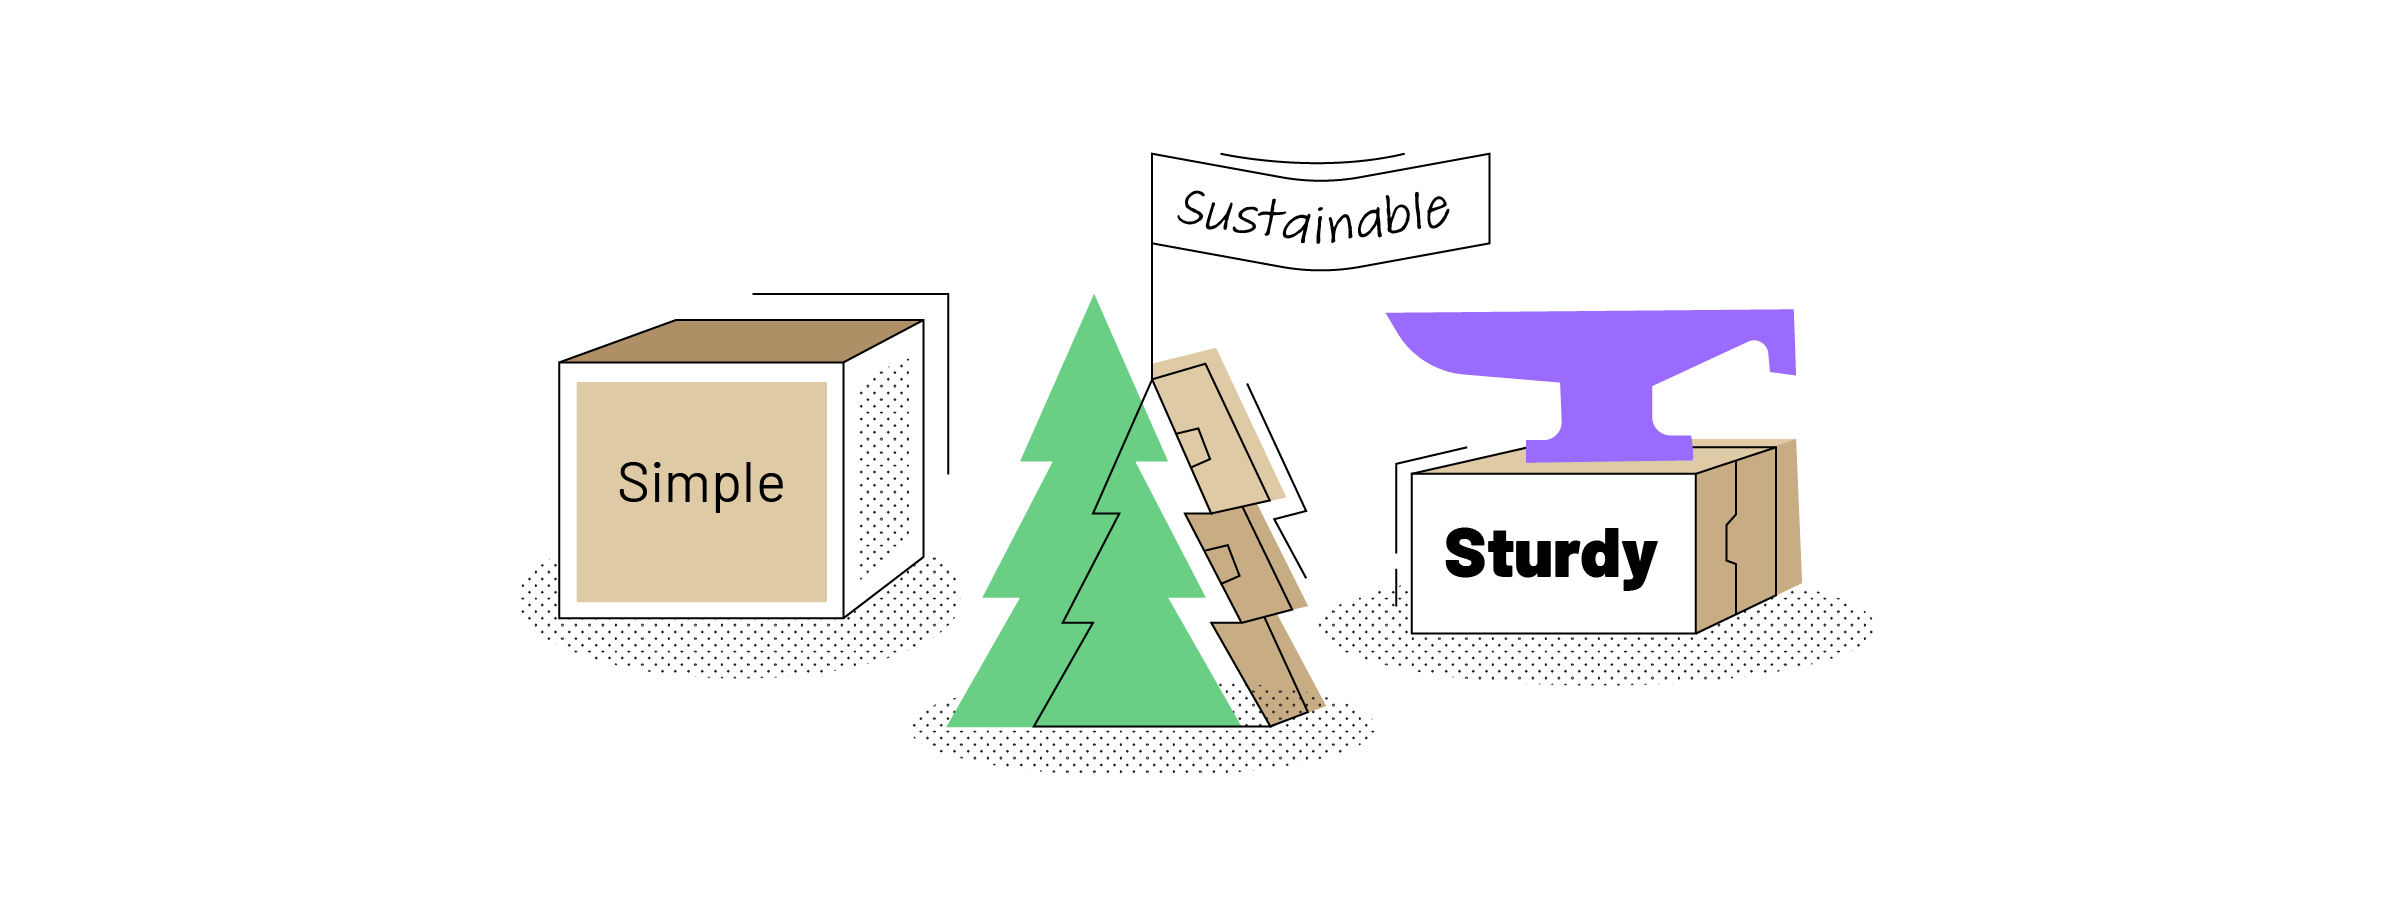 The 3 Ss of sustainable packaging - Simply, Sustainable, Sturdy